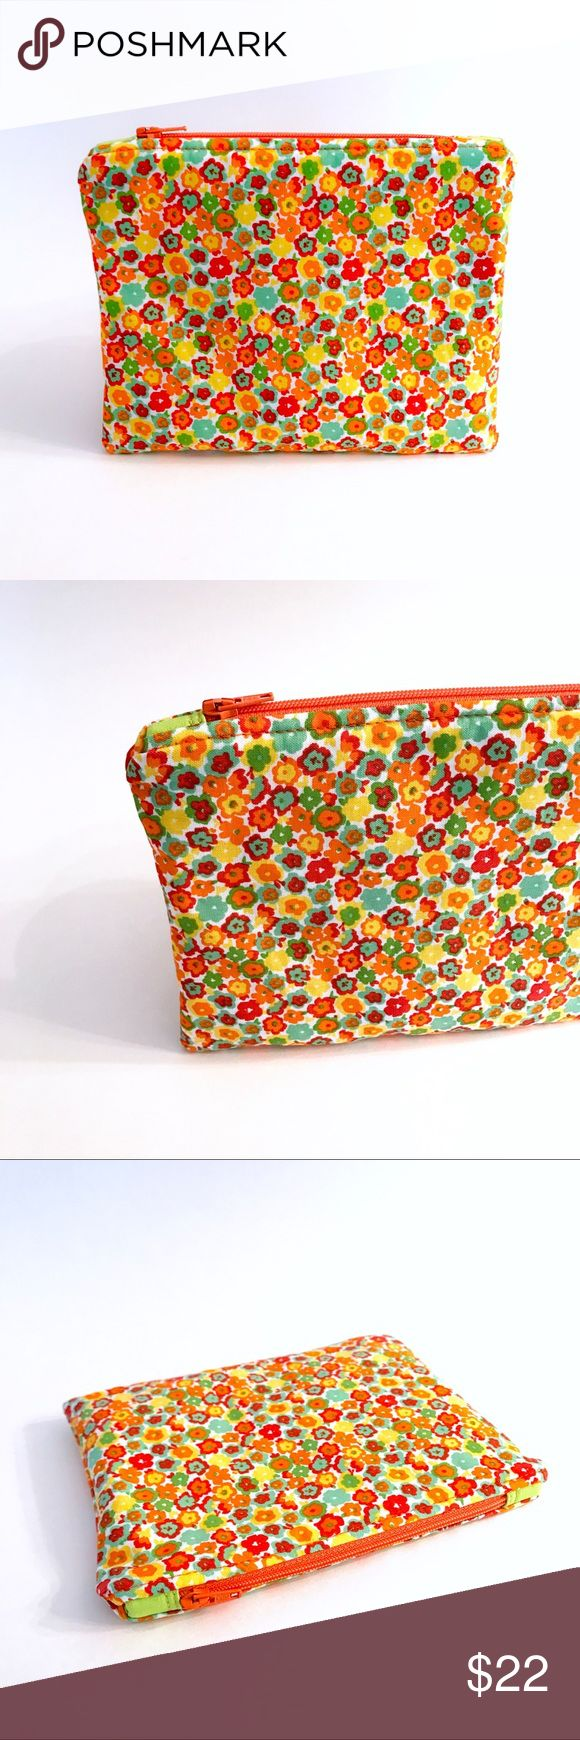 """Padded Zipper Pouch Multi-purposeful! Excellent companion to  your everyday bag or strong enough to be used  on its own.    Organize anything from:  currency & cards, cosmetics, jewelry,  pens & pencils, small electronics,  and much more.  Makes a great gift too!  Cotton/Cotton Zipper Length: 5.5""""  Brand new! Arrives wrapped with tags attached.  *Please excuse any imperfections as this is created by hand with the utmost care and attention to detail. Handmade Bags Cosmetic Bags & Cases"""